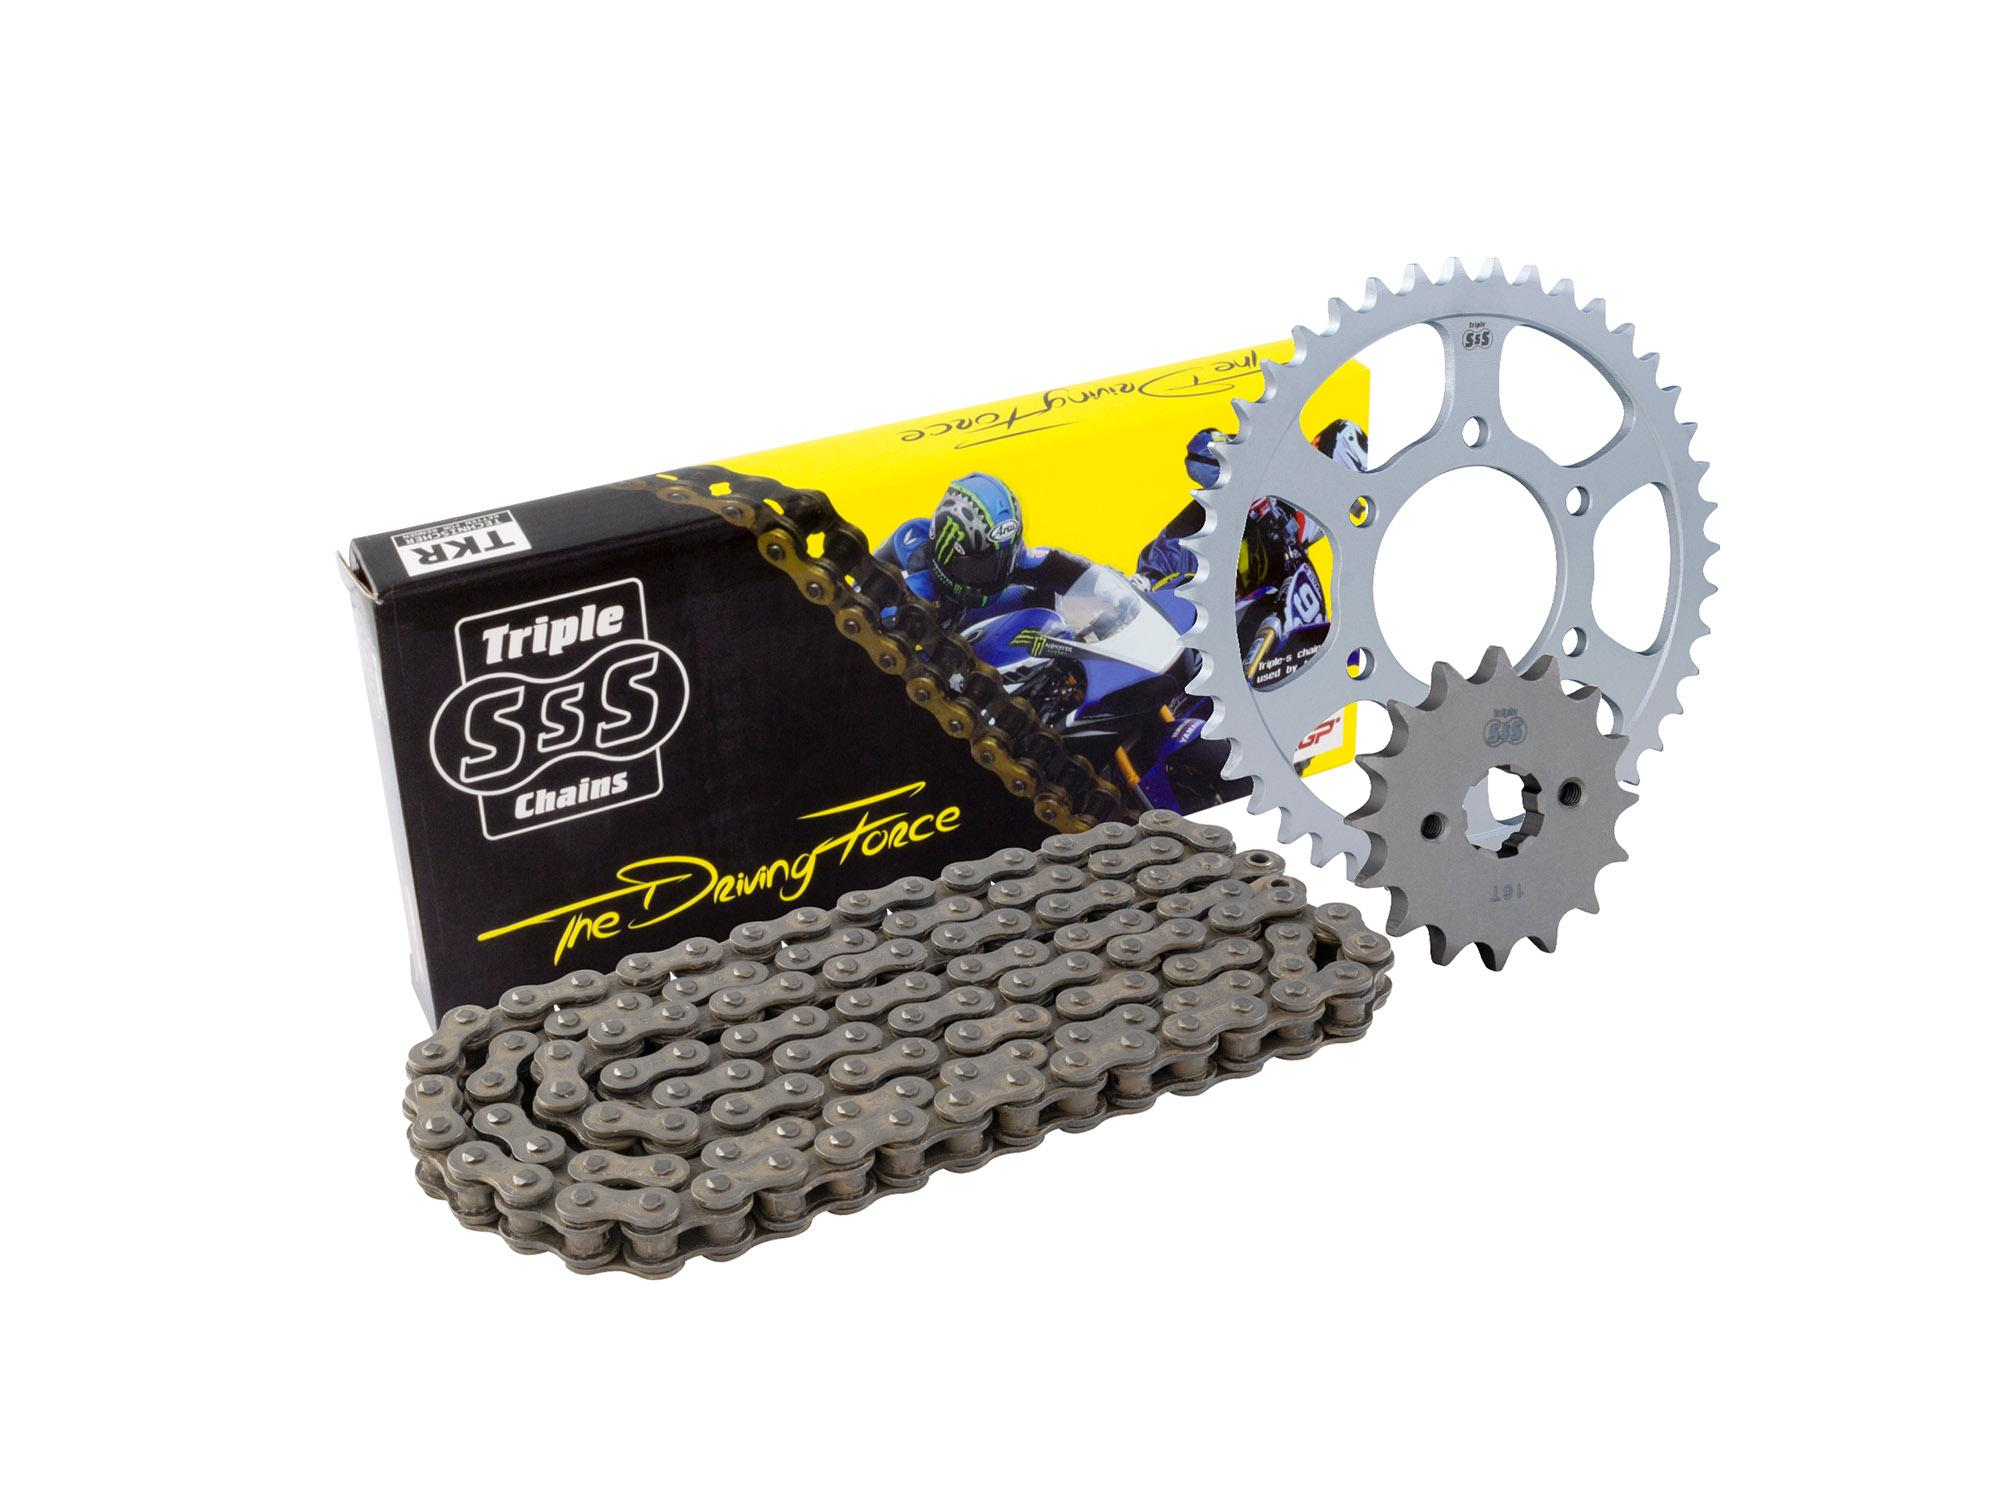 Ducati 695 Monster 08 Chain & Sprocket Kit: 15T Front, 42T Rear, HD O-Ring Black Chain 520H 106Link